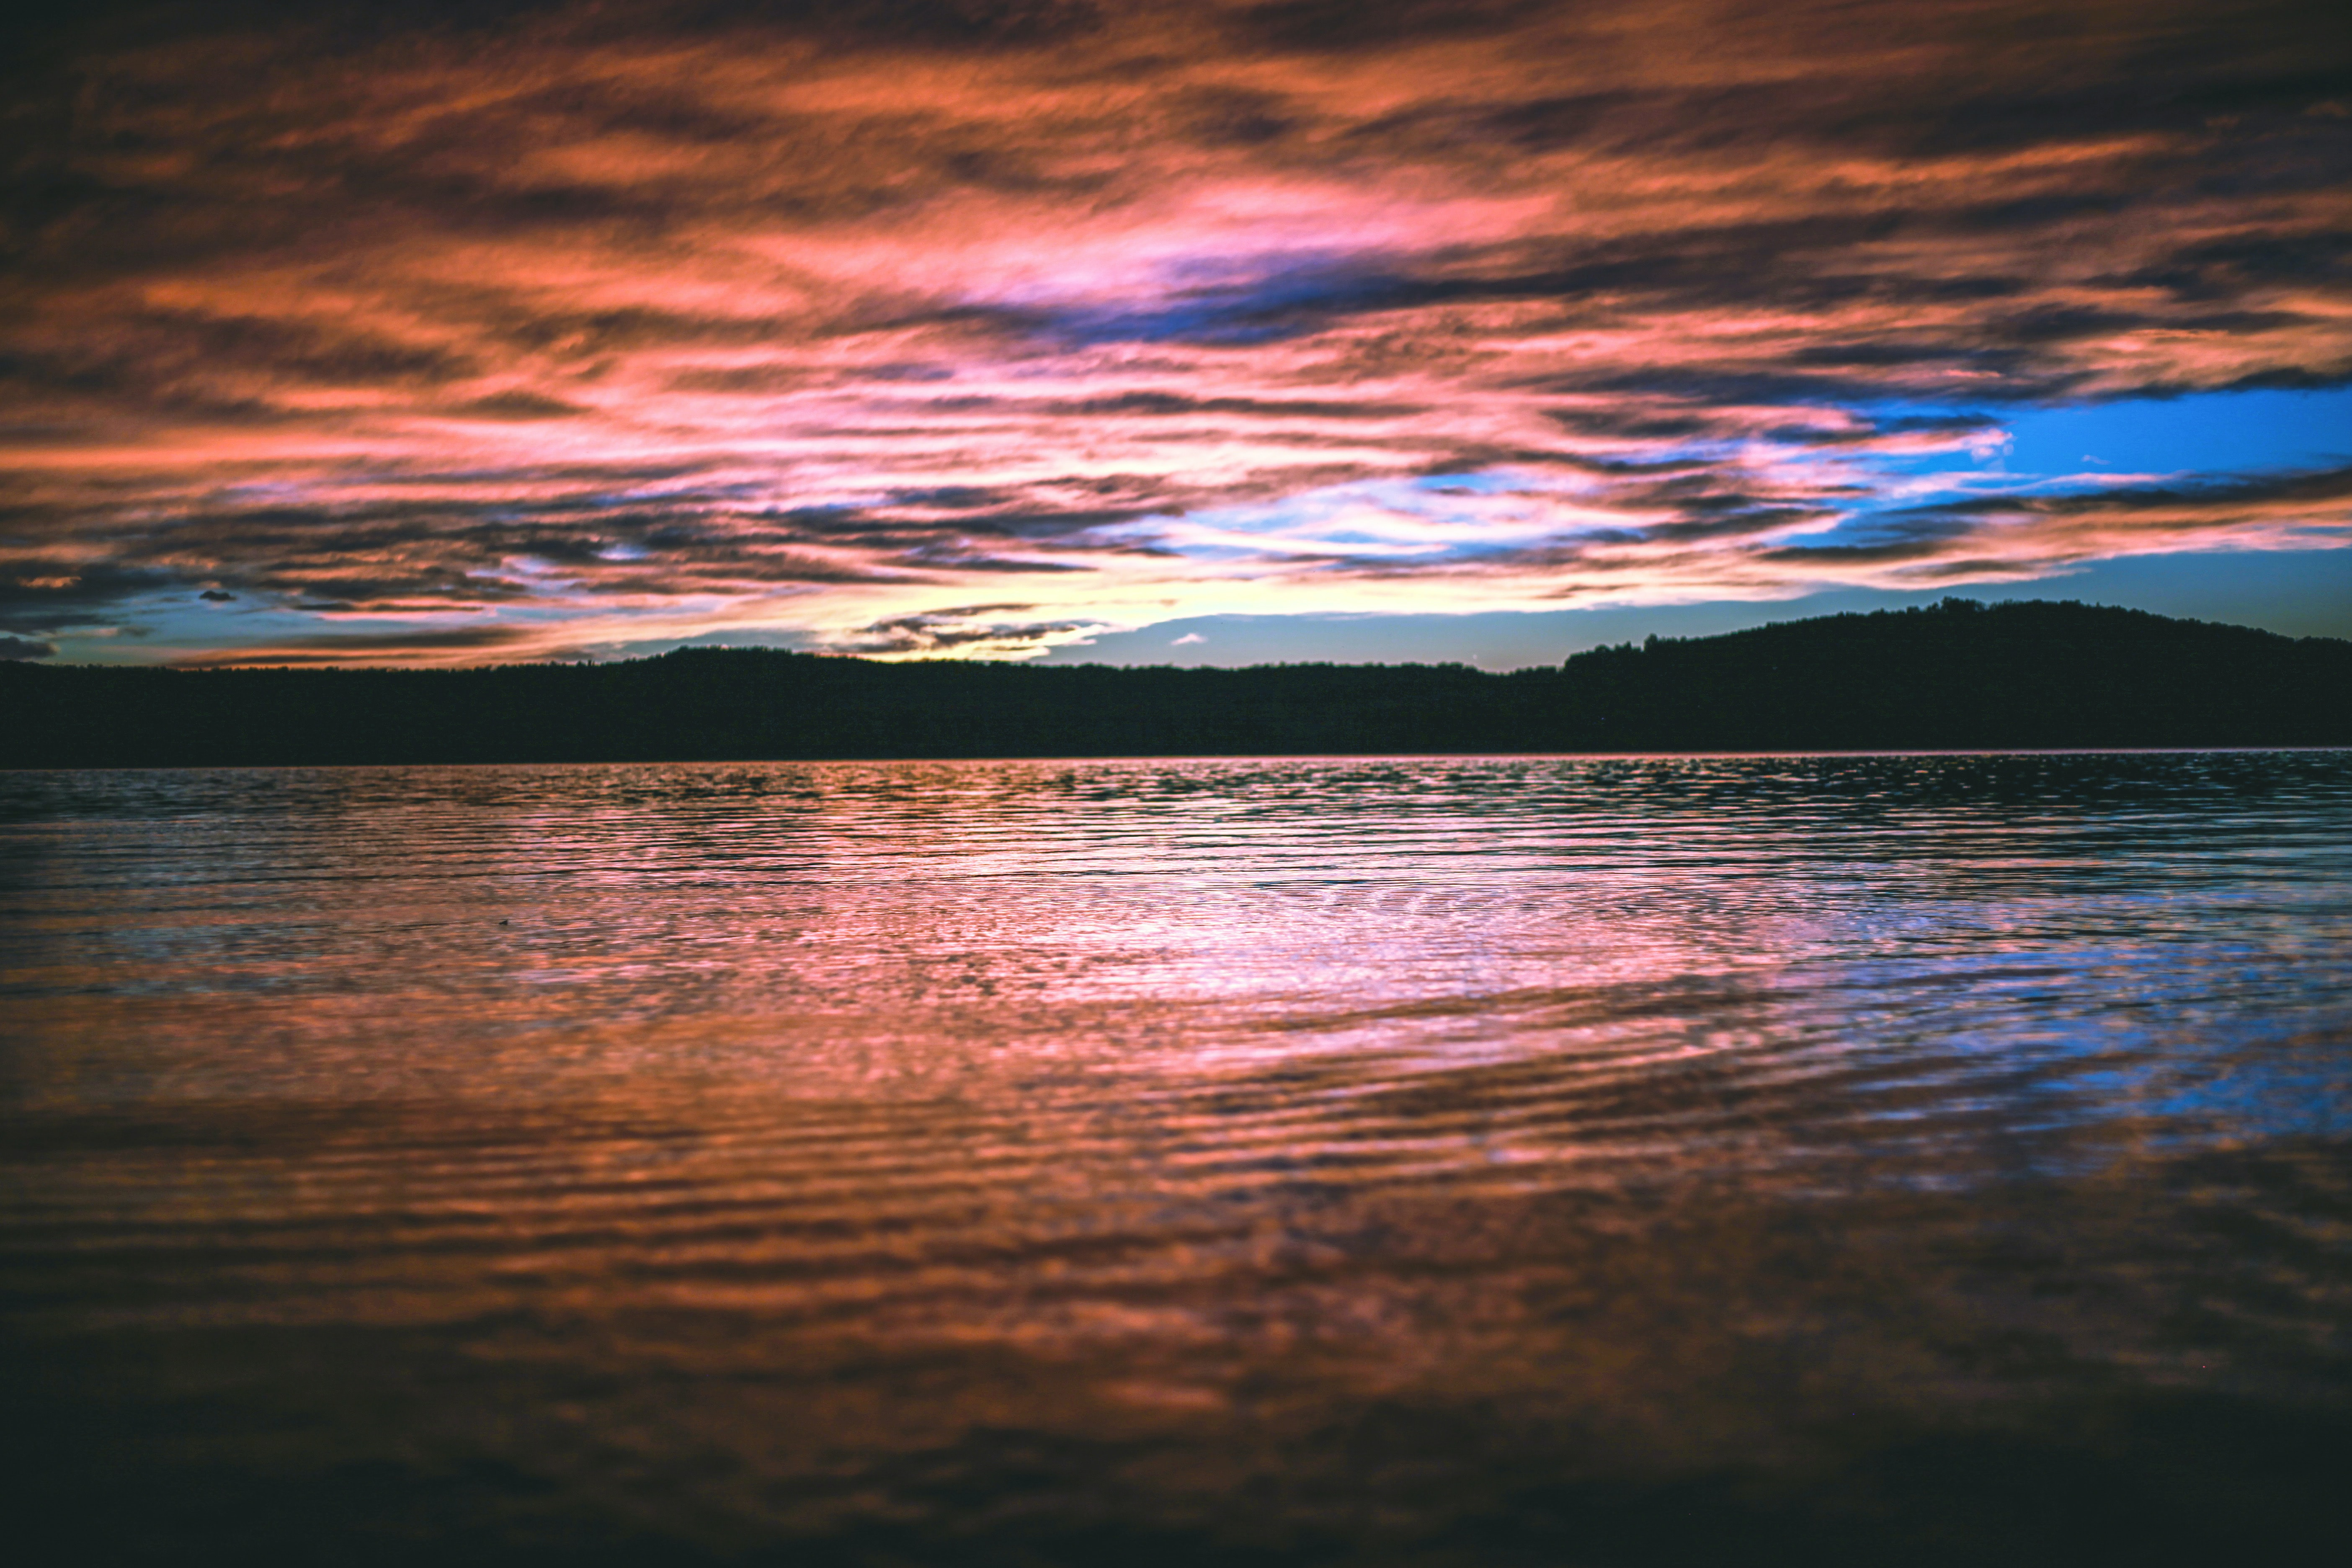 Pink clouds and deep blue sky reflected in water at sunset in Branson.